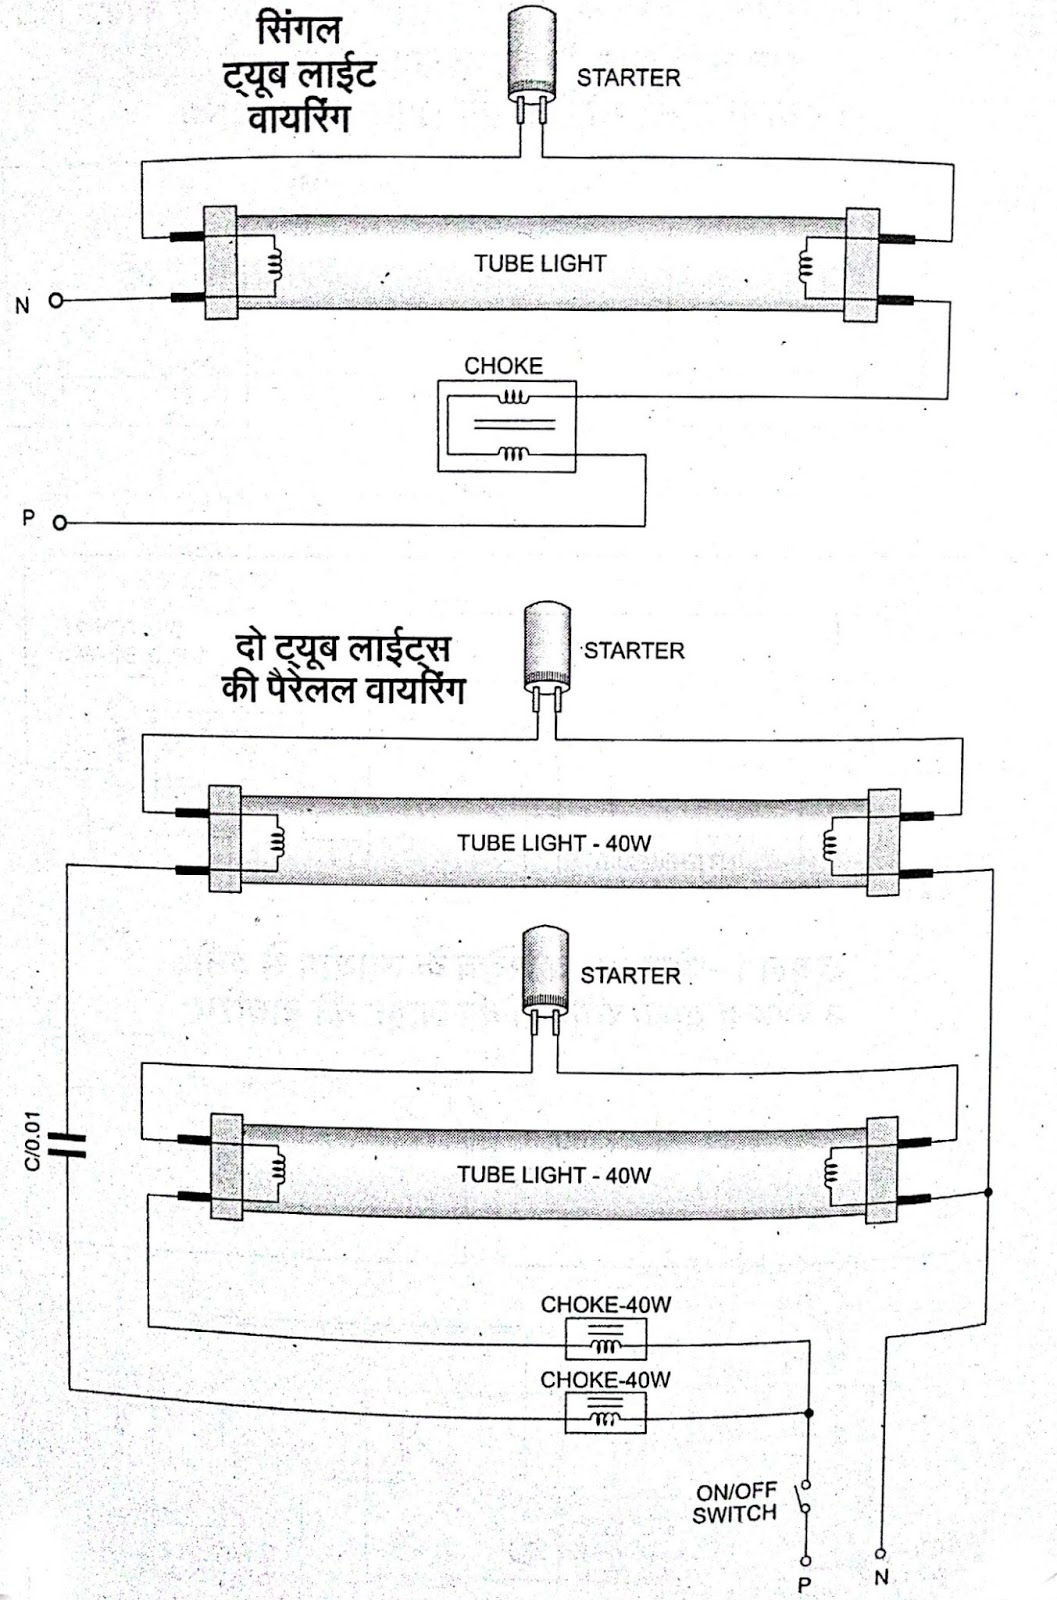 Tubelight_connection%255B1%255D learn electrician tube light wiring connections choke wiring diagram for merc 225 carb at gsmx.co